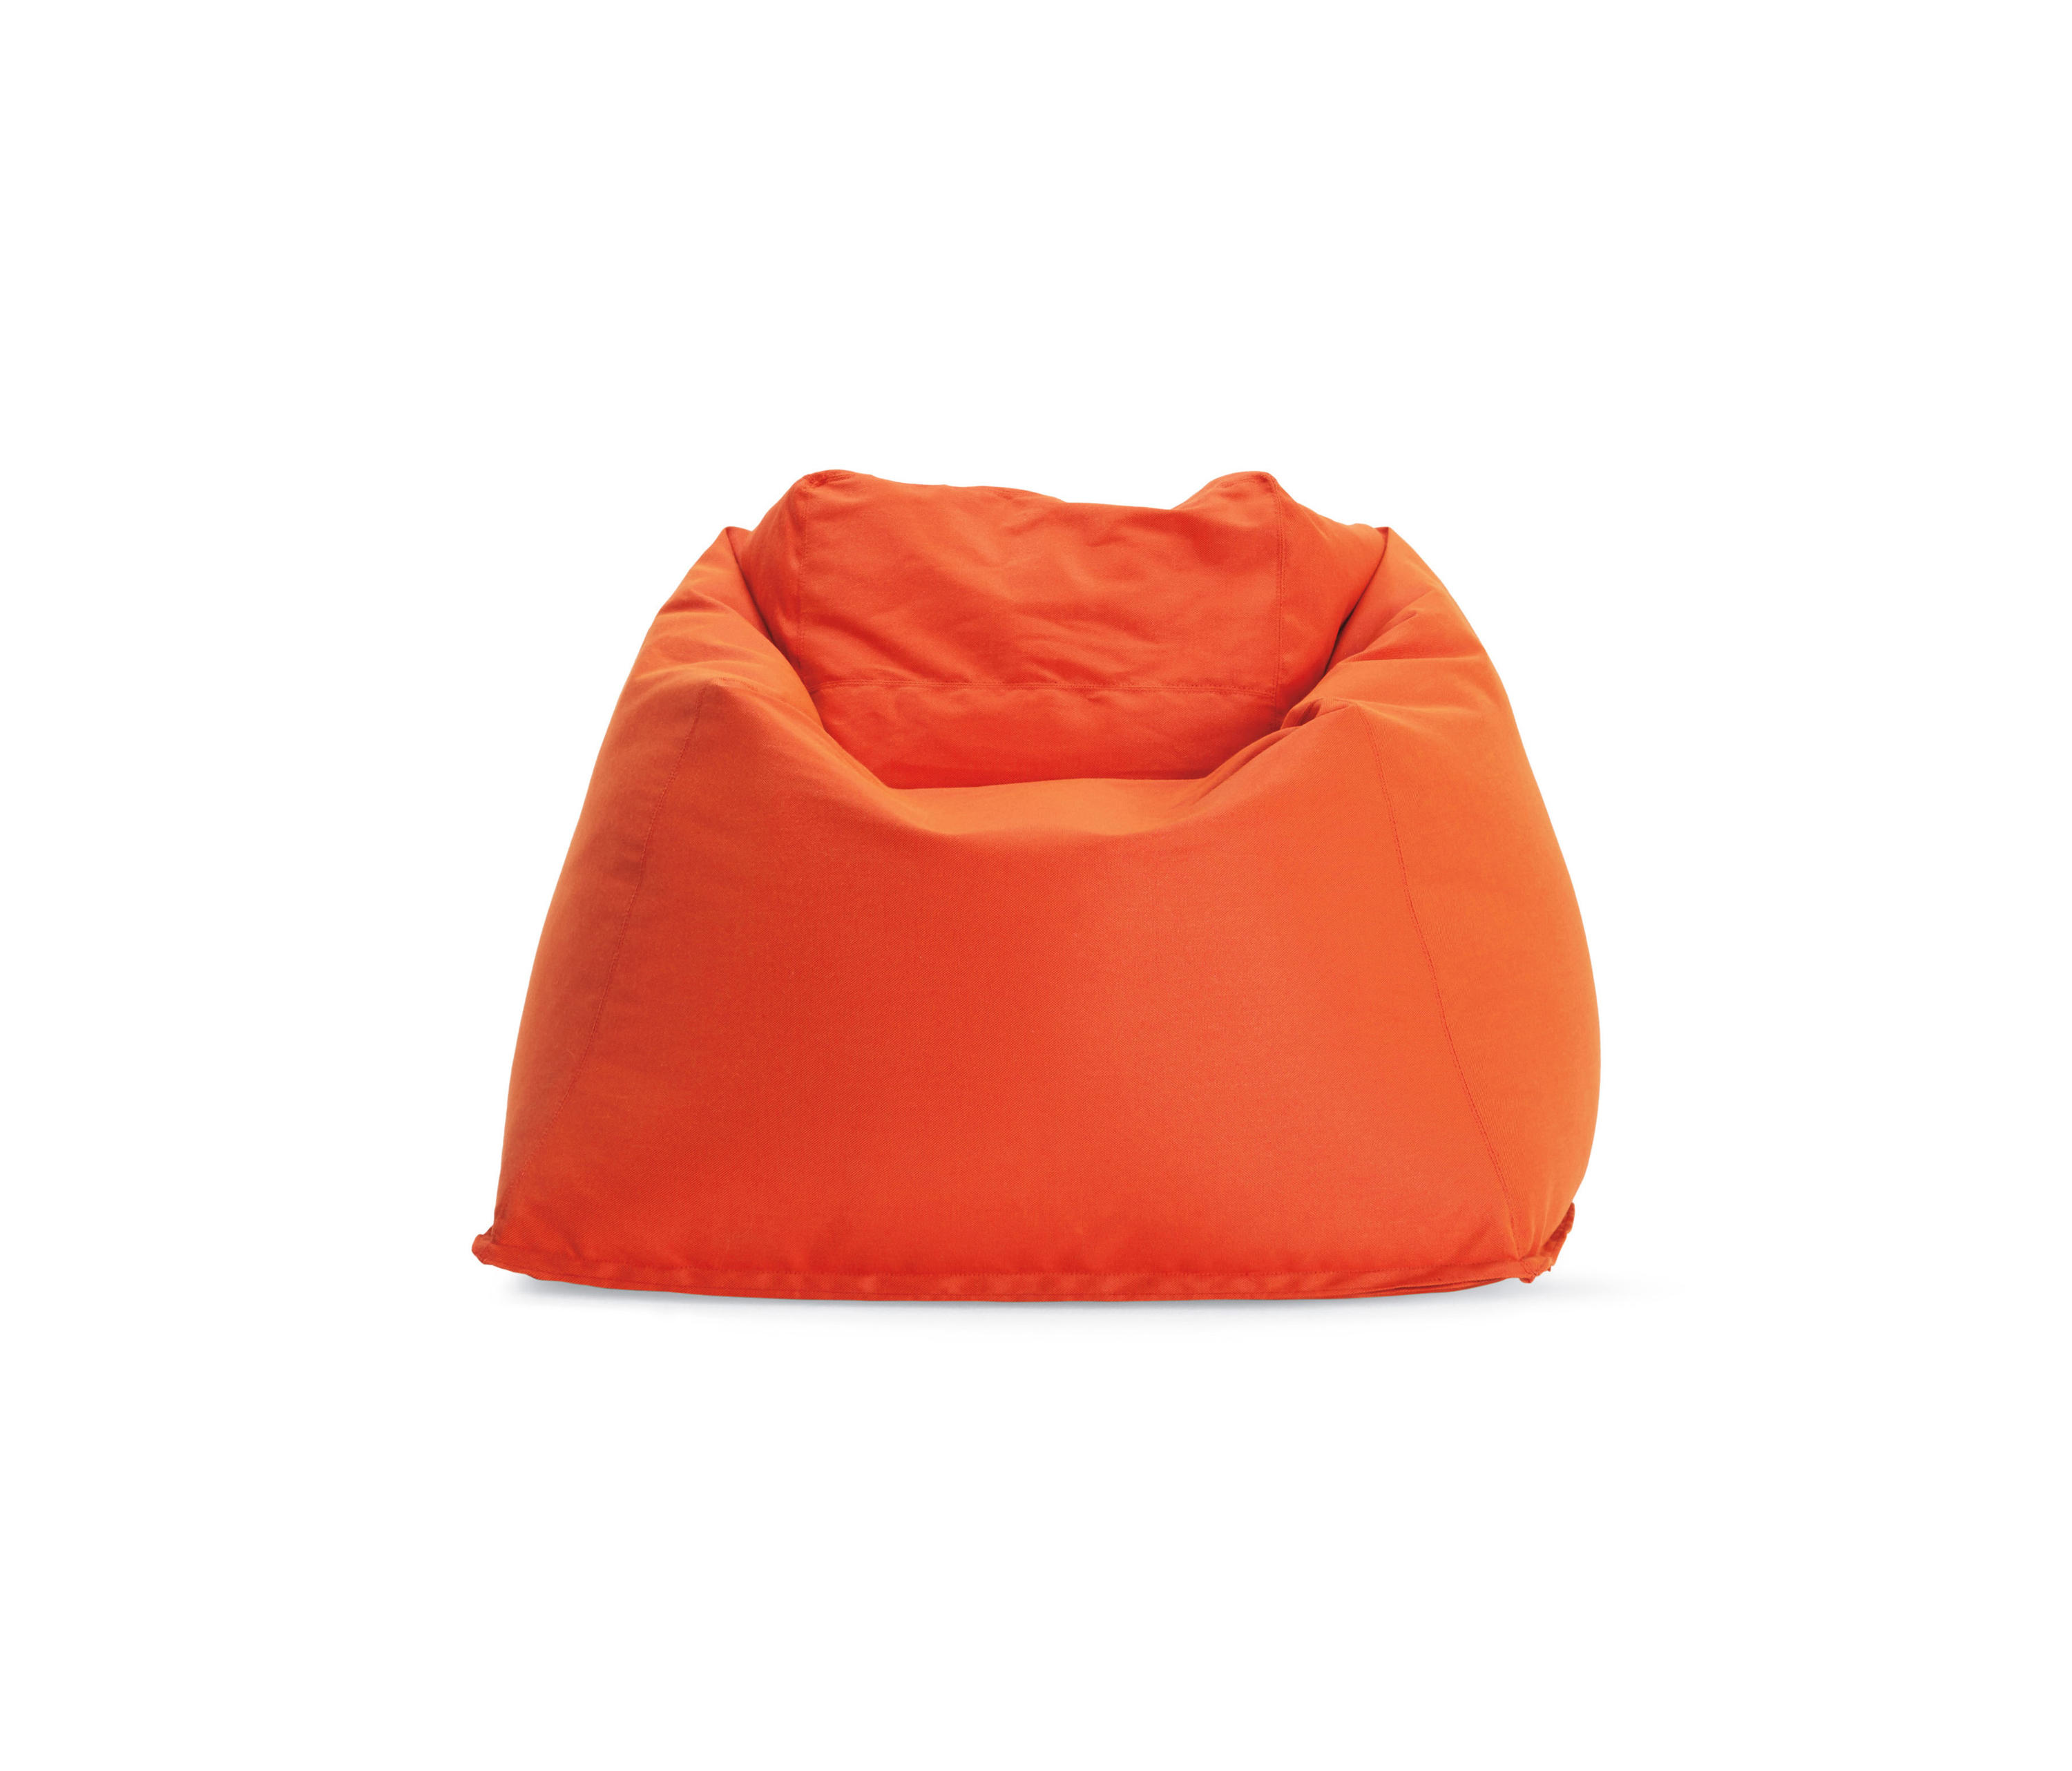 Outdoor Eazy Bean Everest Chair Beanbags From Design